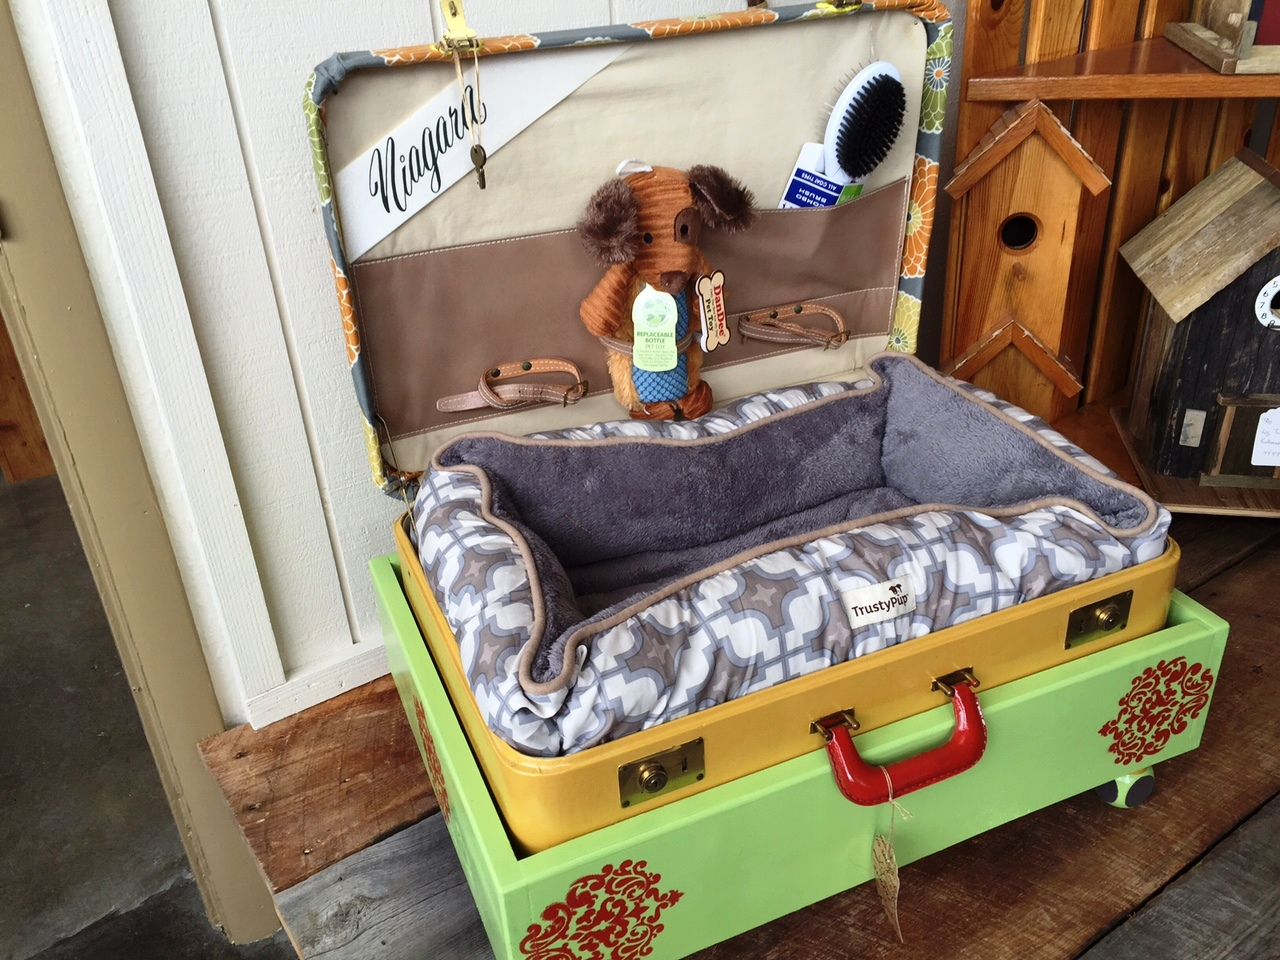 green dog bed.jpg